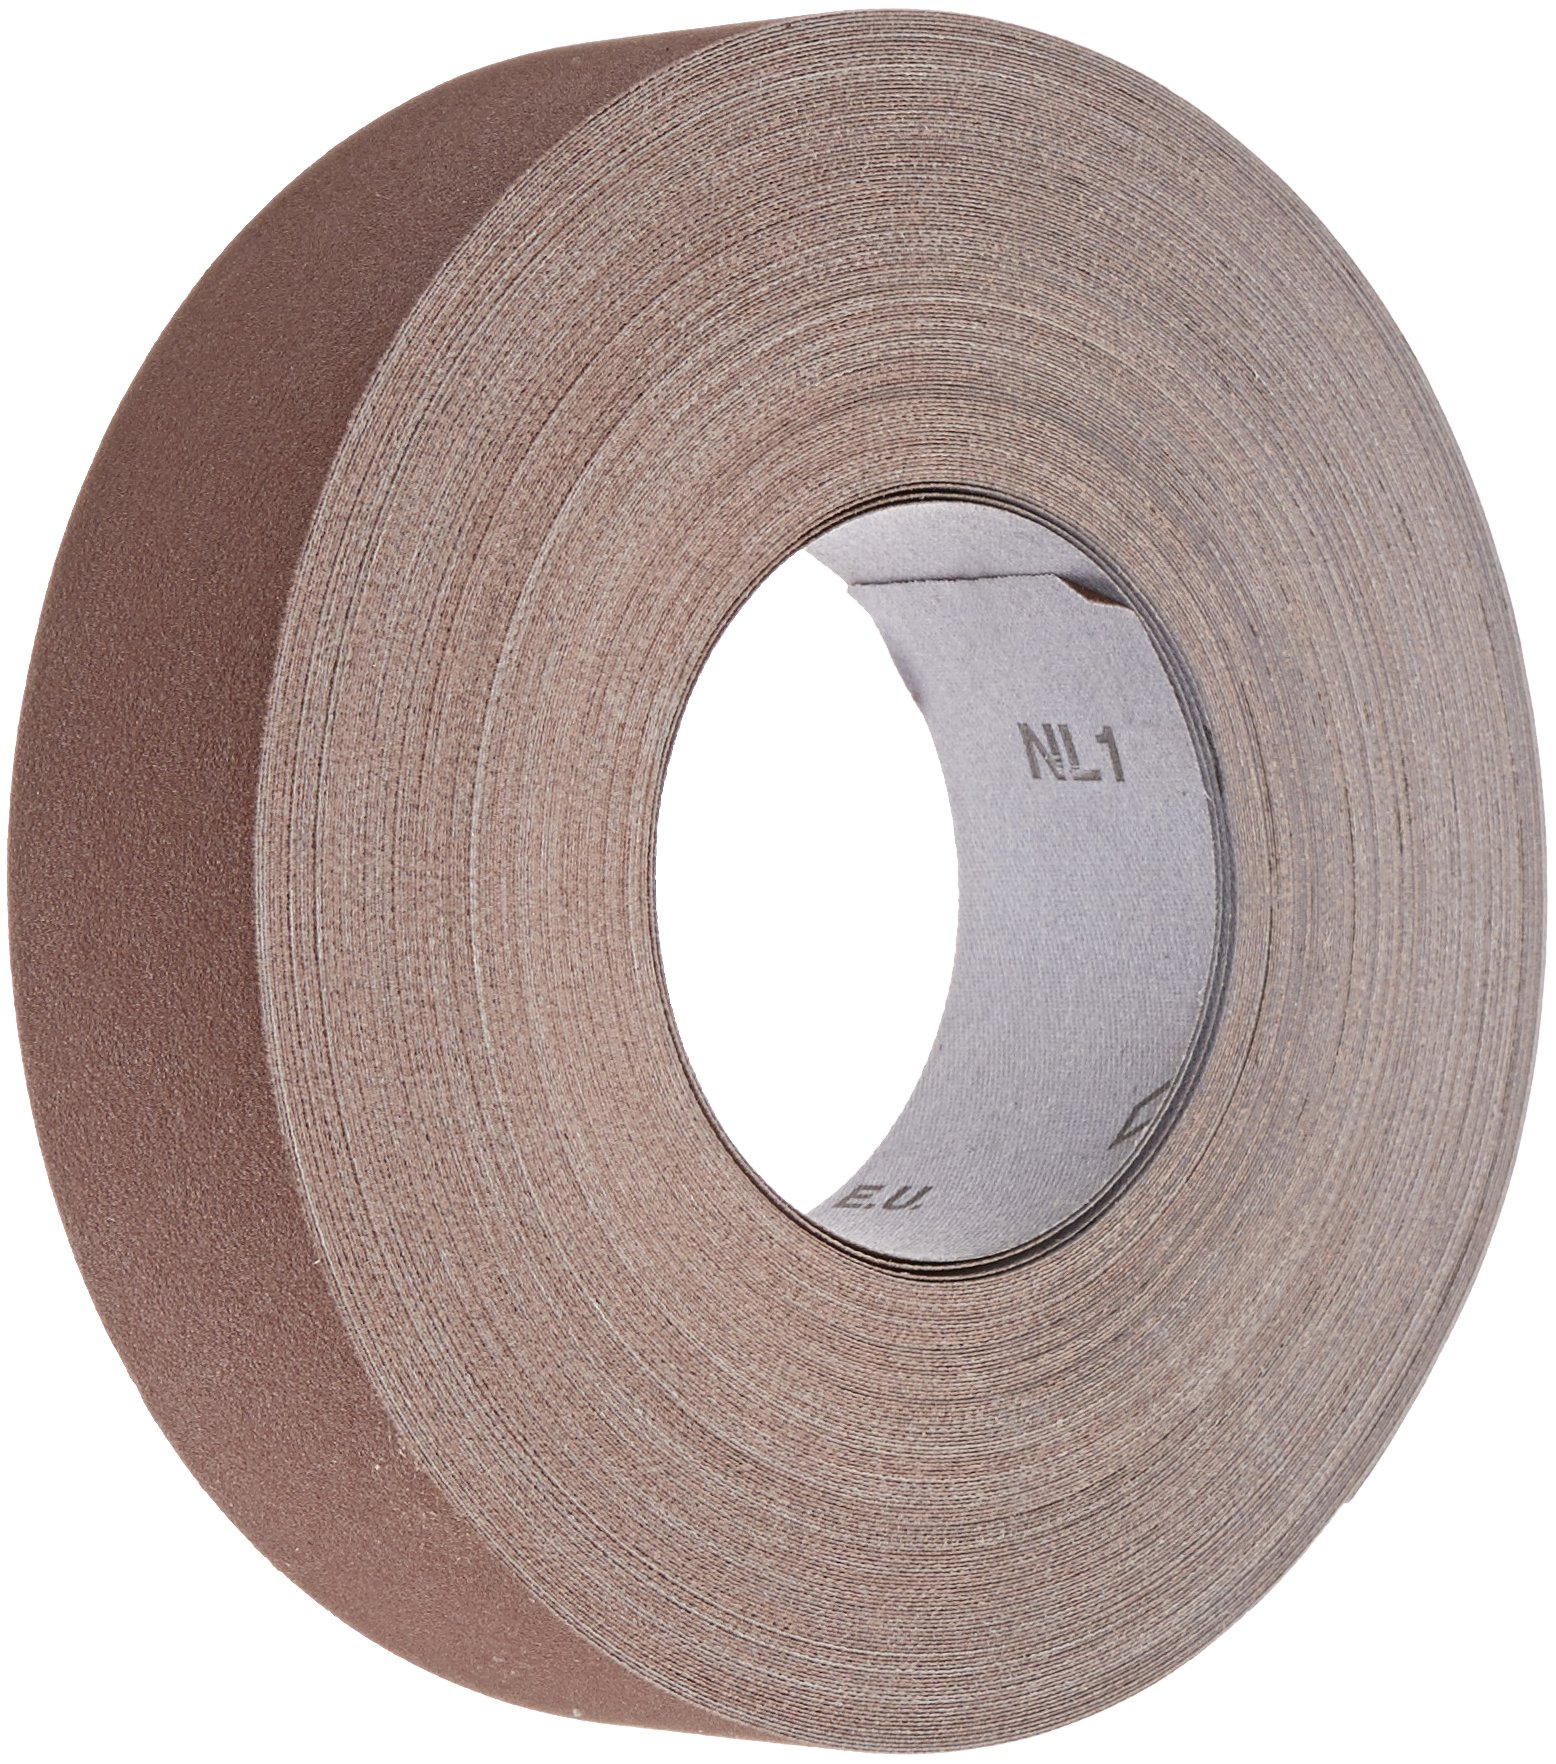 Pack of 5 Norton K225 Metalite Abrasive Roll Cloth Backing Aluminum Oxide 2 Width x 50yd Length Grit P180